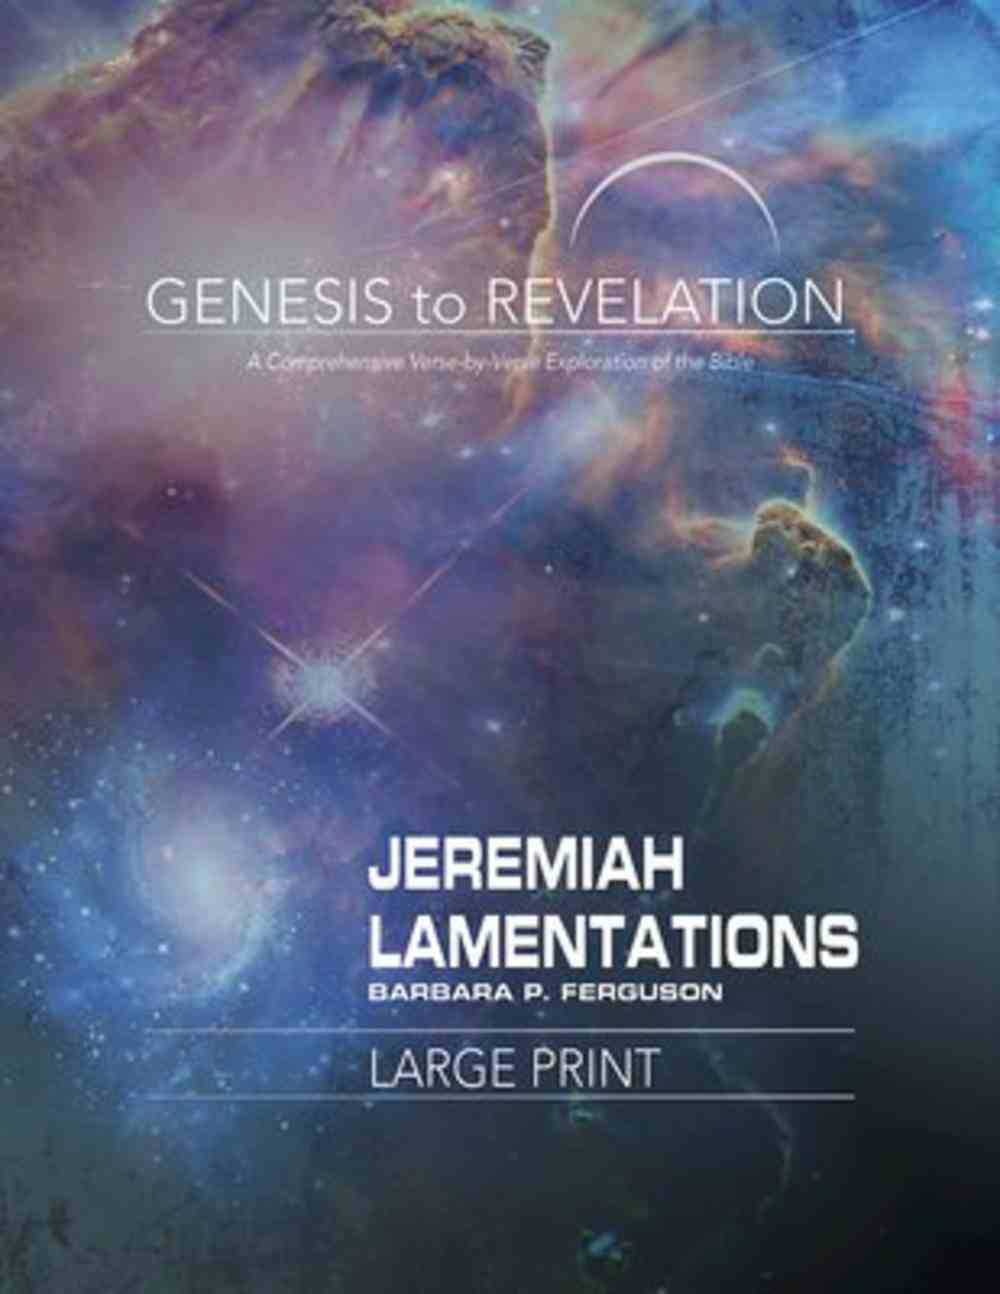 Jeremiah, Lamentations : A Comprehensive Verse-By-Verse Exploration of the Bible (Participant Book, Large Print) (Genesis To Revelation Series) Paperback